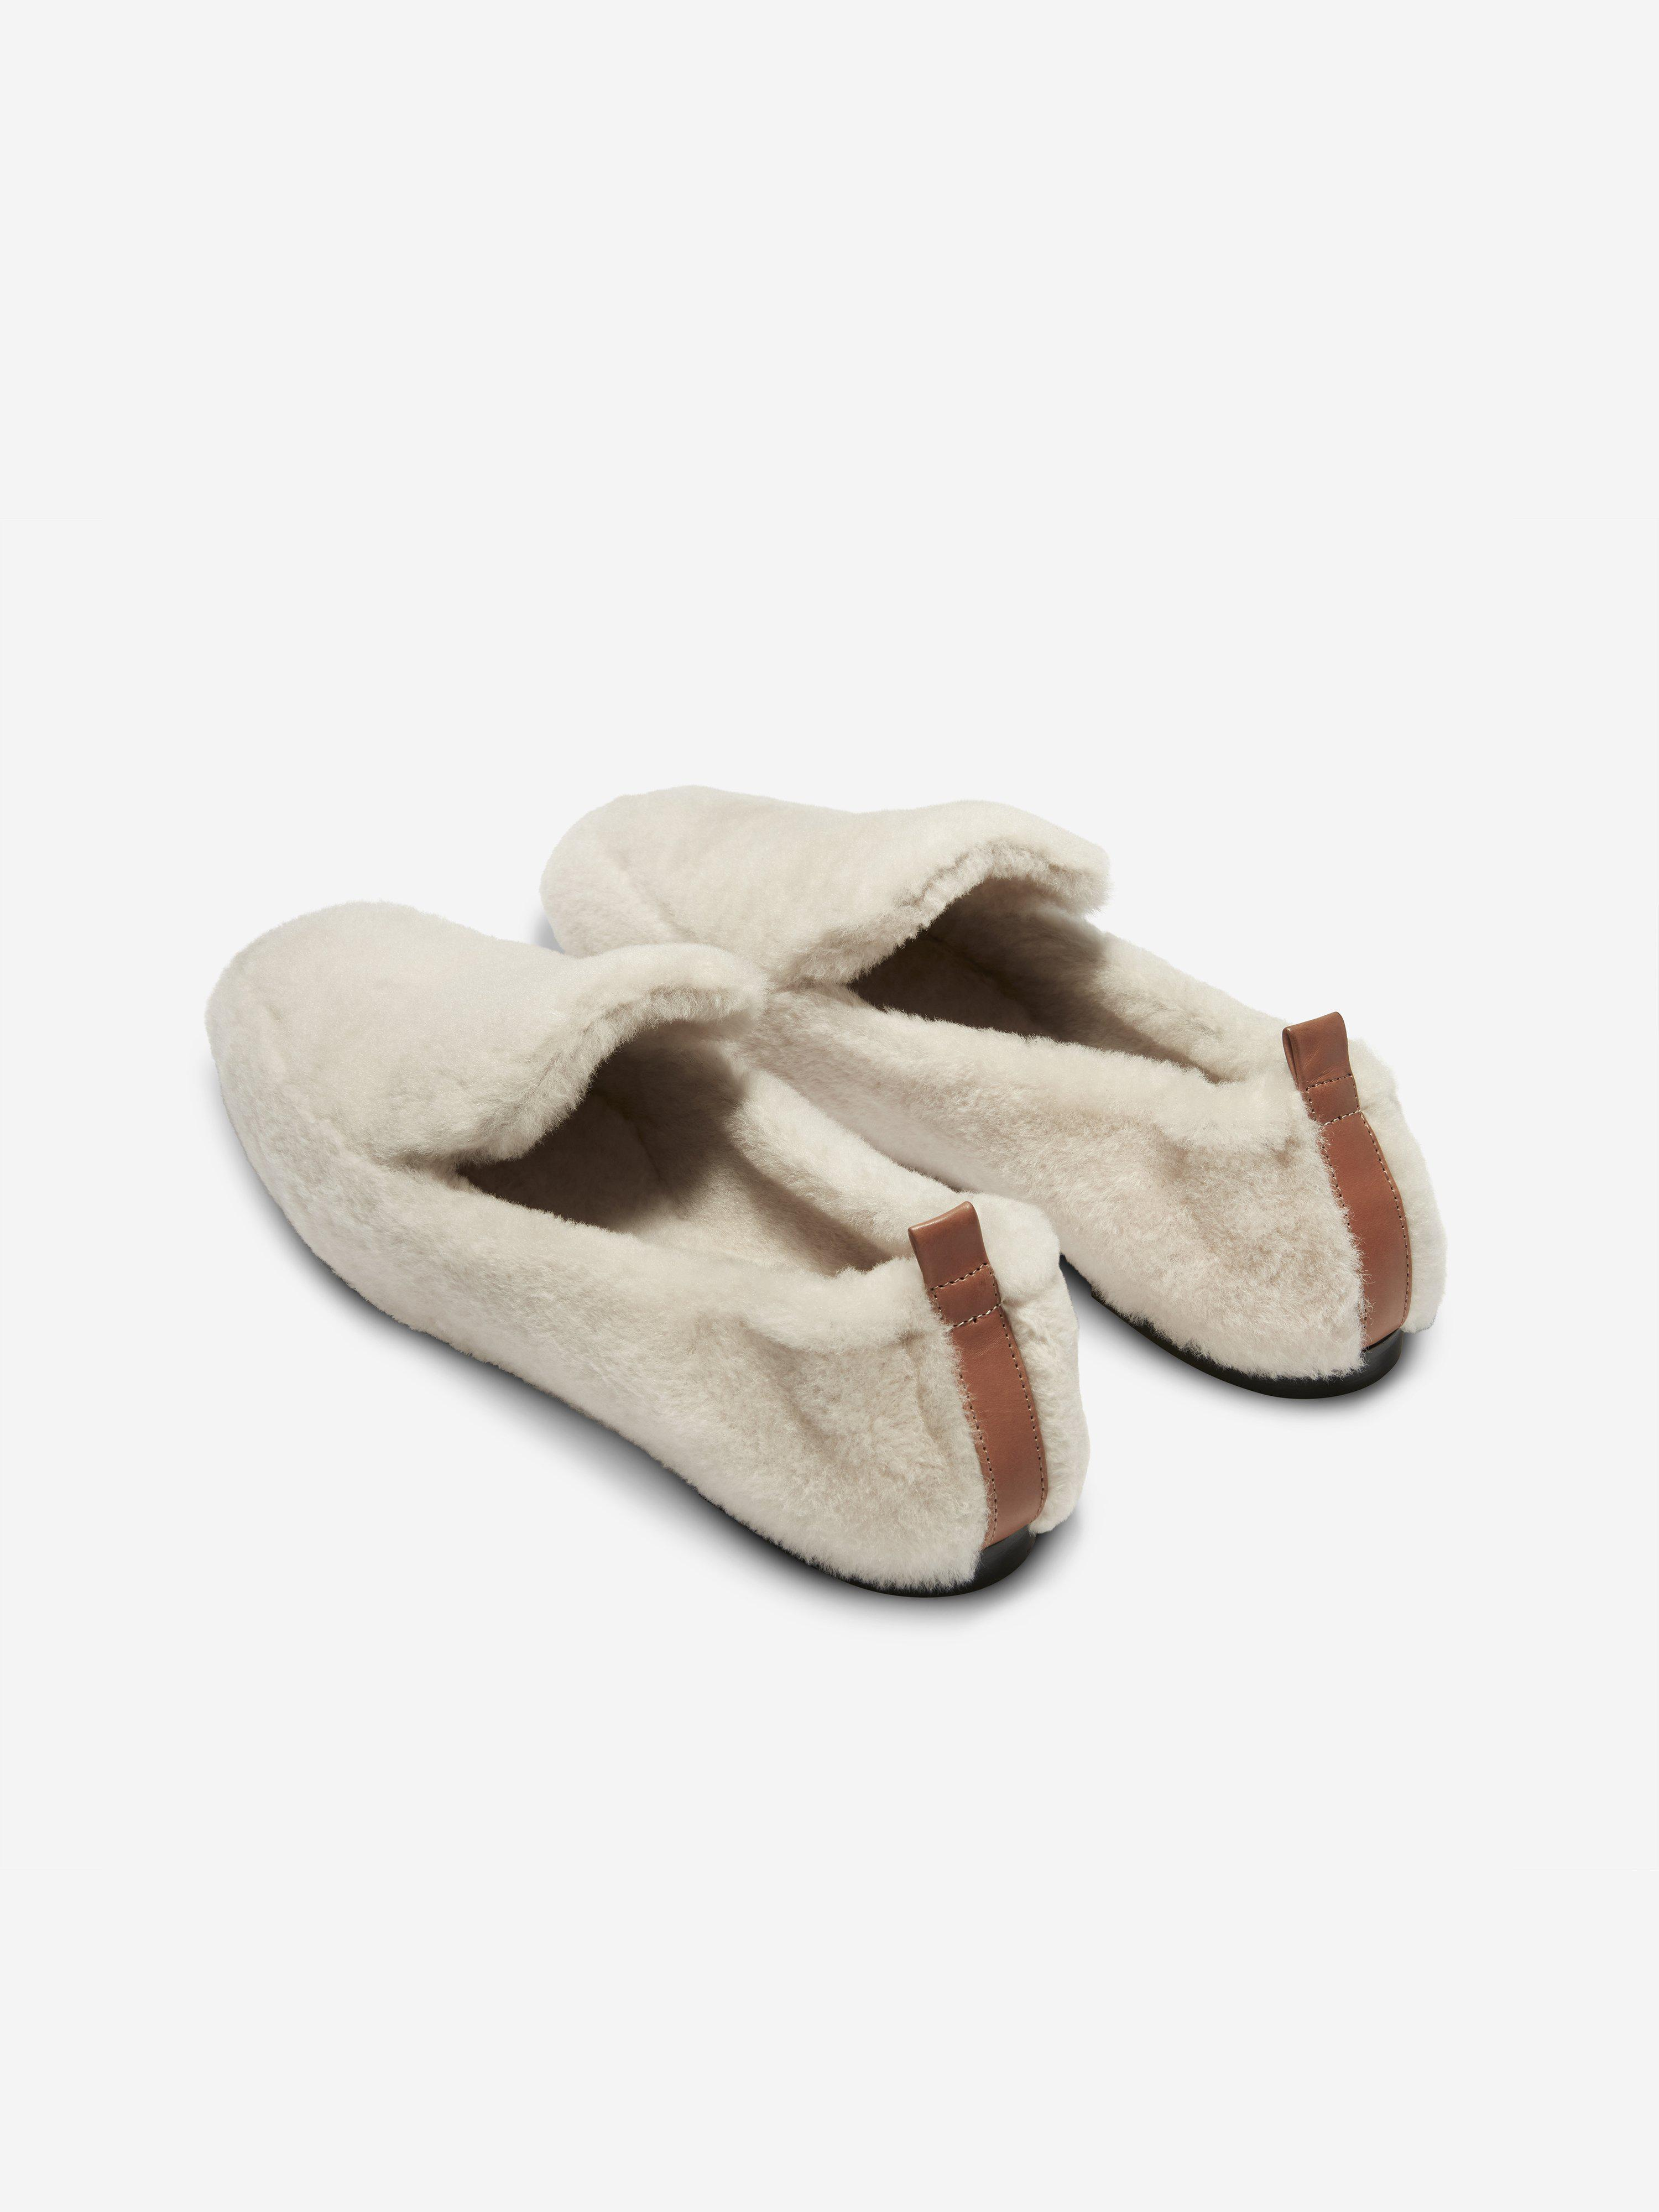 Stow - Shearling 3